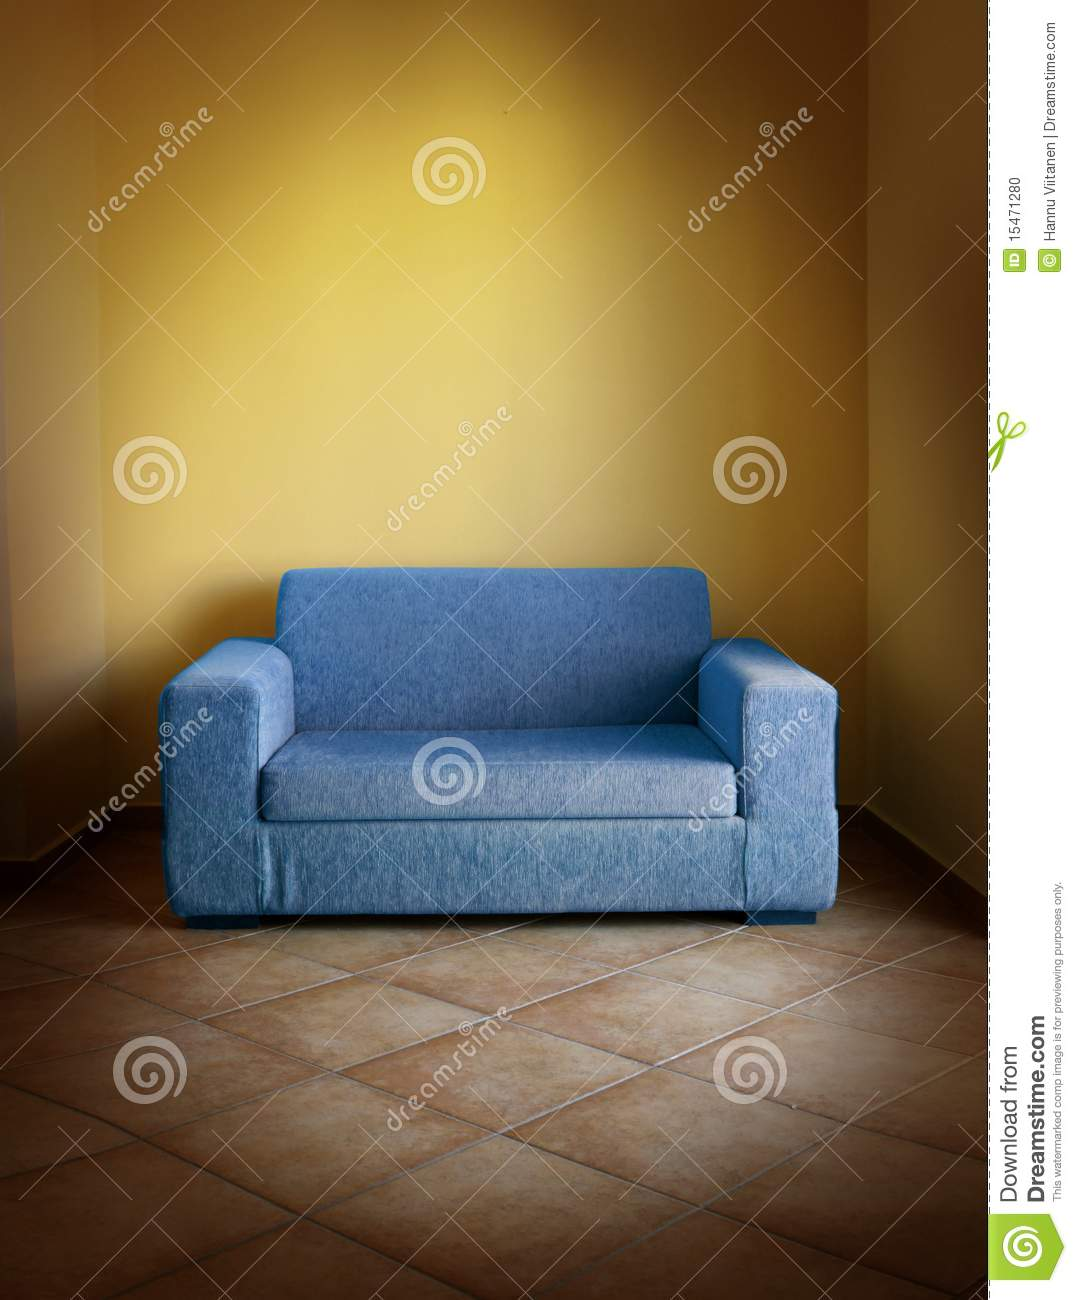 Blue Sofa Yellow Wall Stock Photo Image 15471280